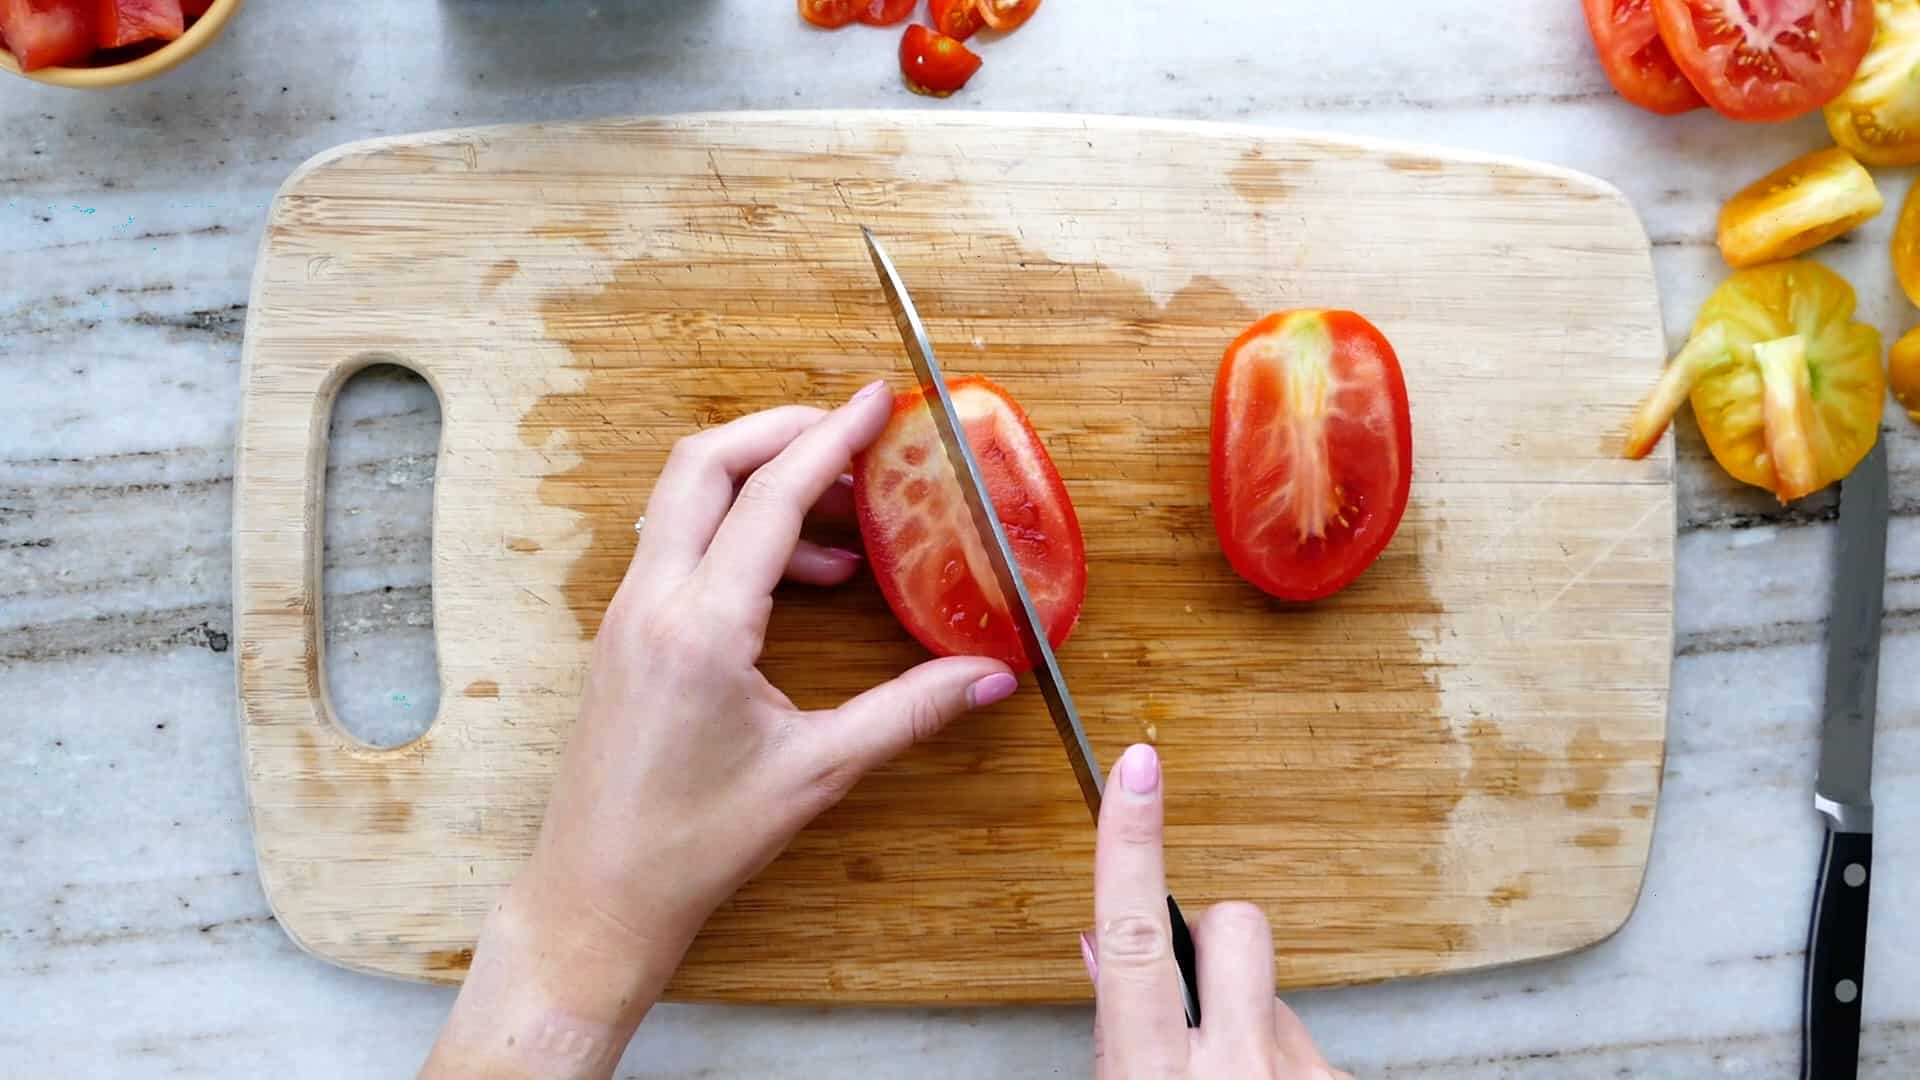 woman slicing a roma tomato into quarters on a cutting board